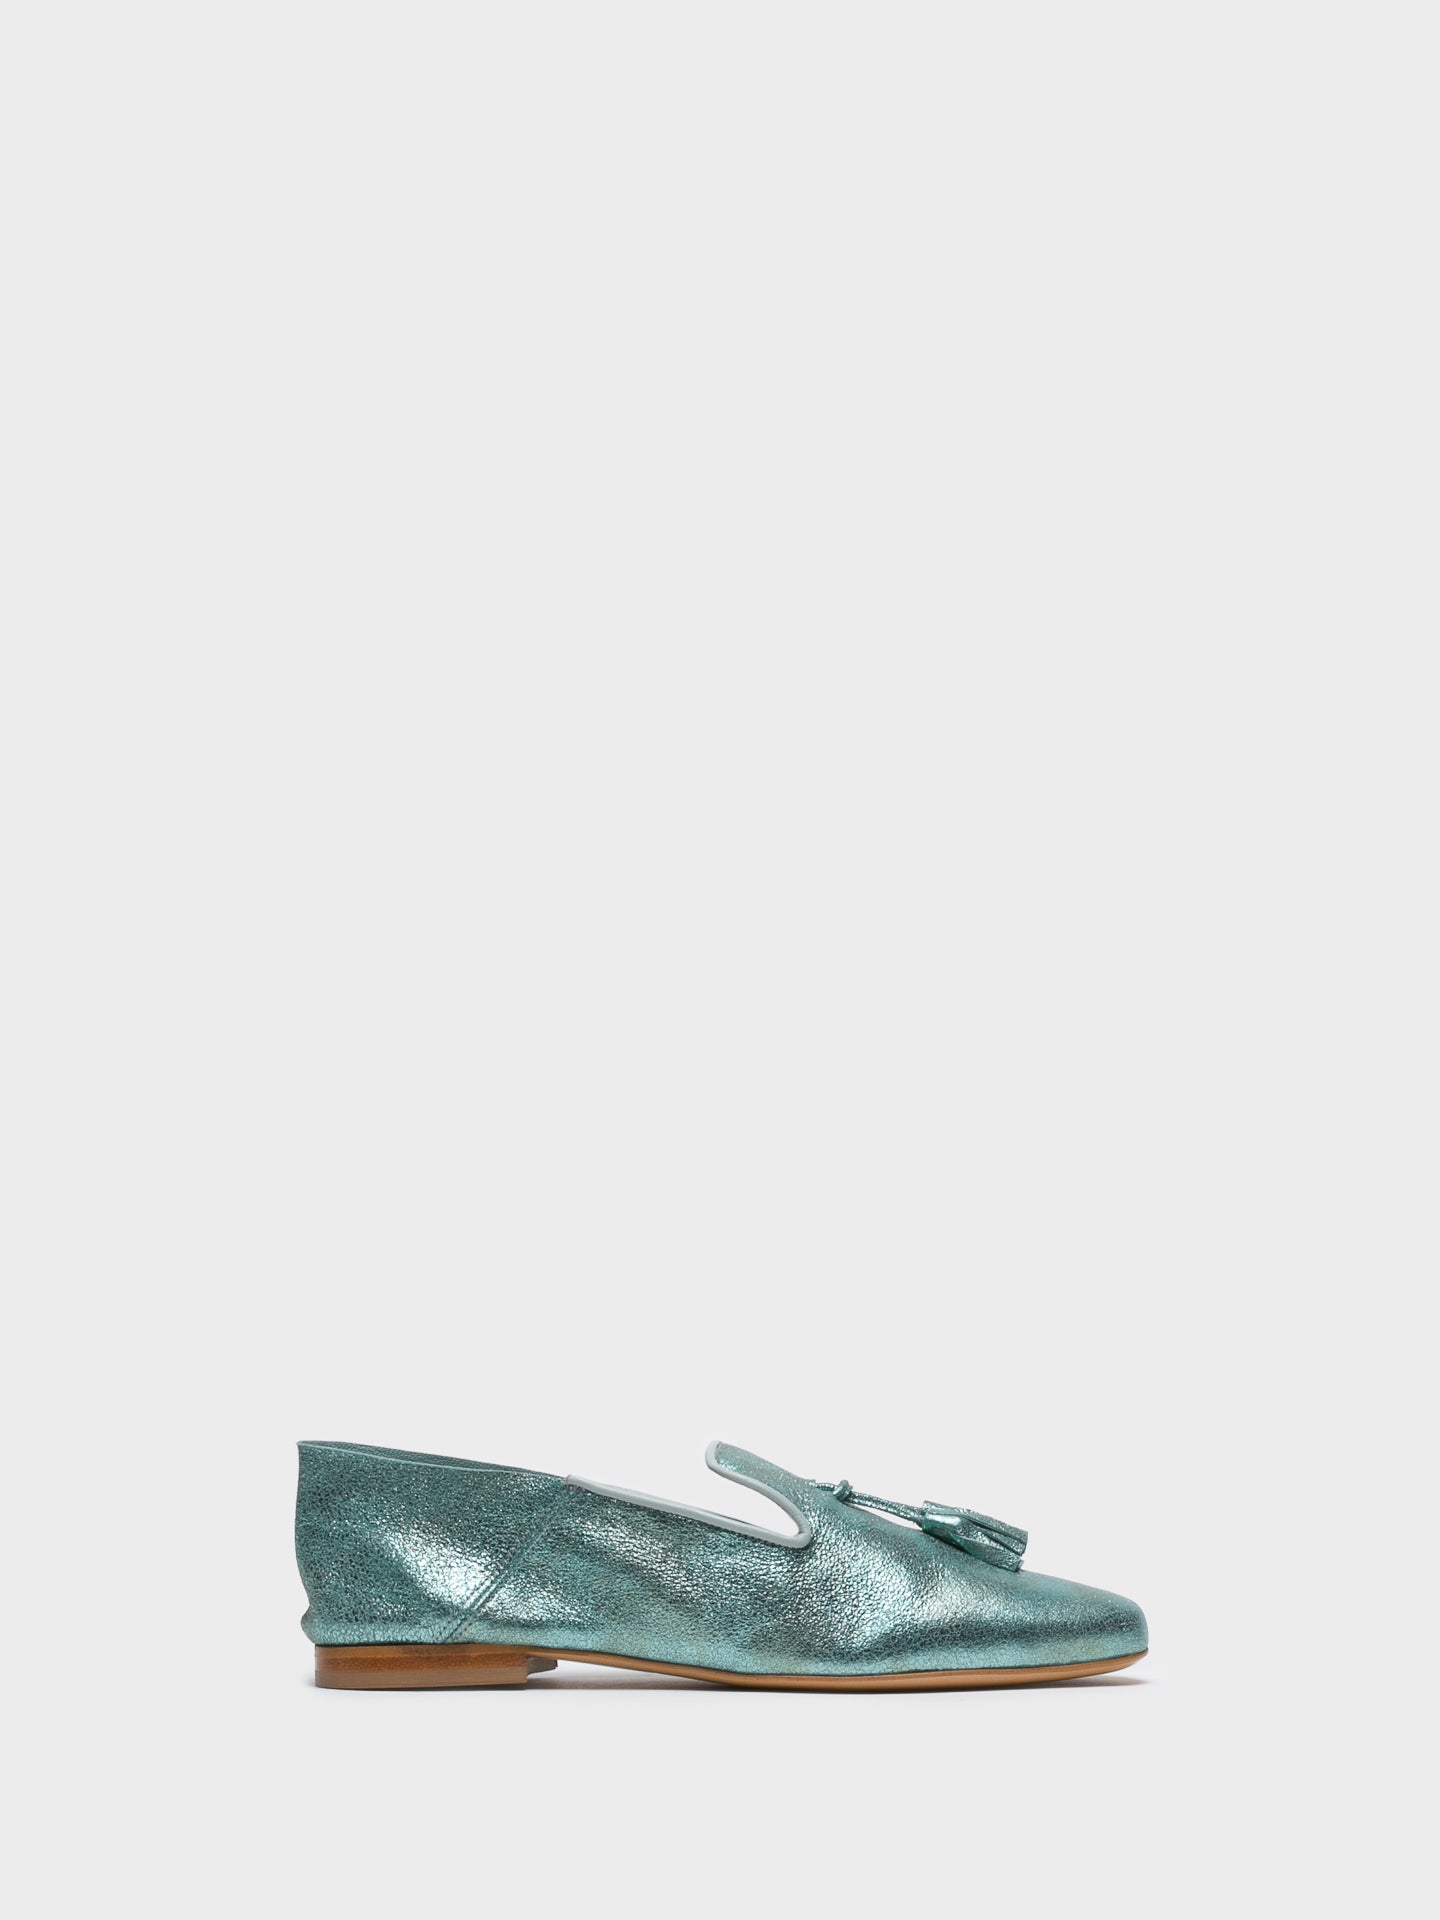 JJ Heitor Loafers in Aquamarinblau